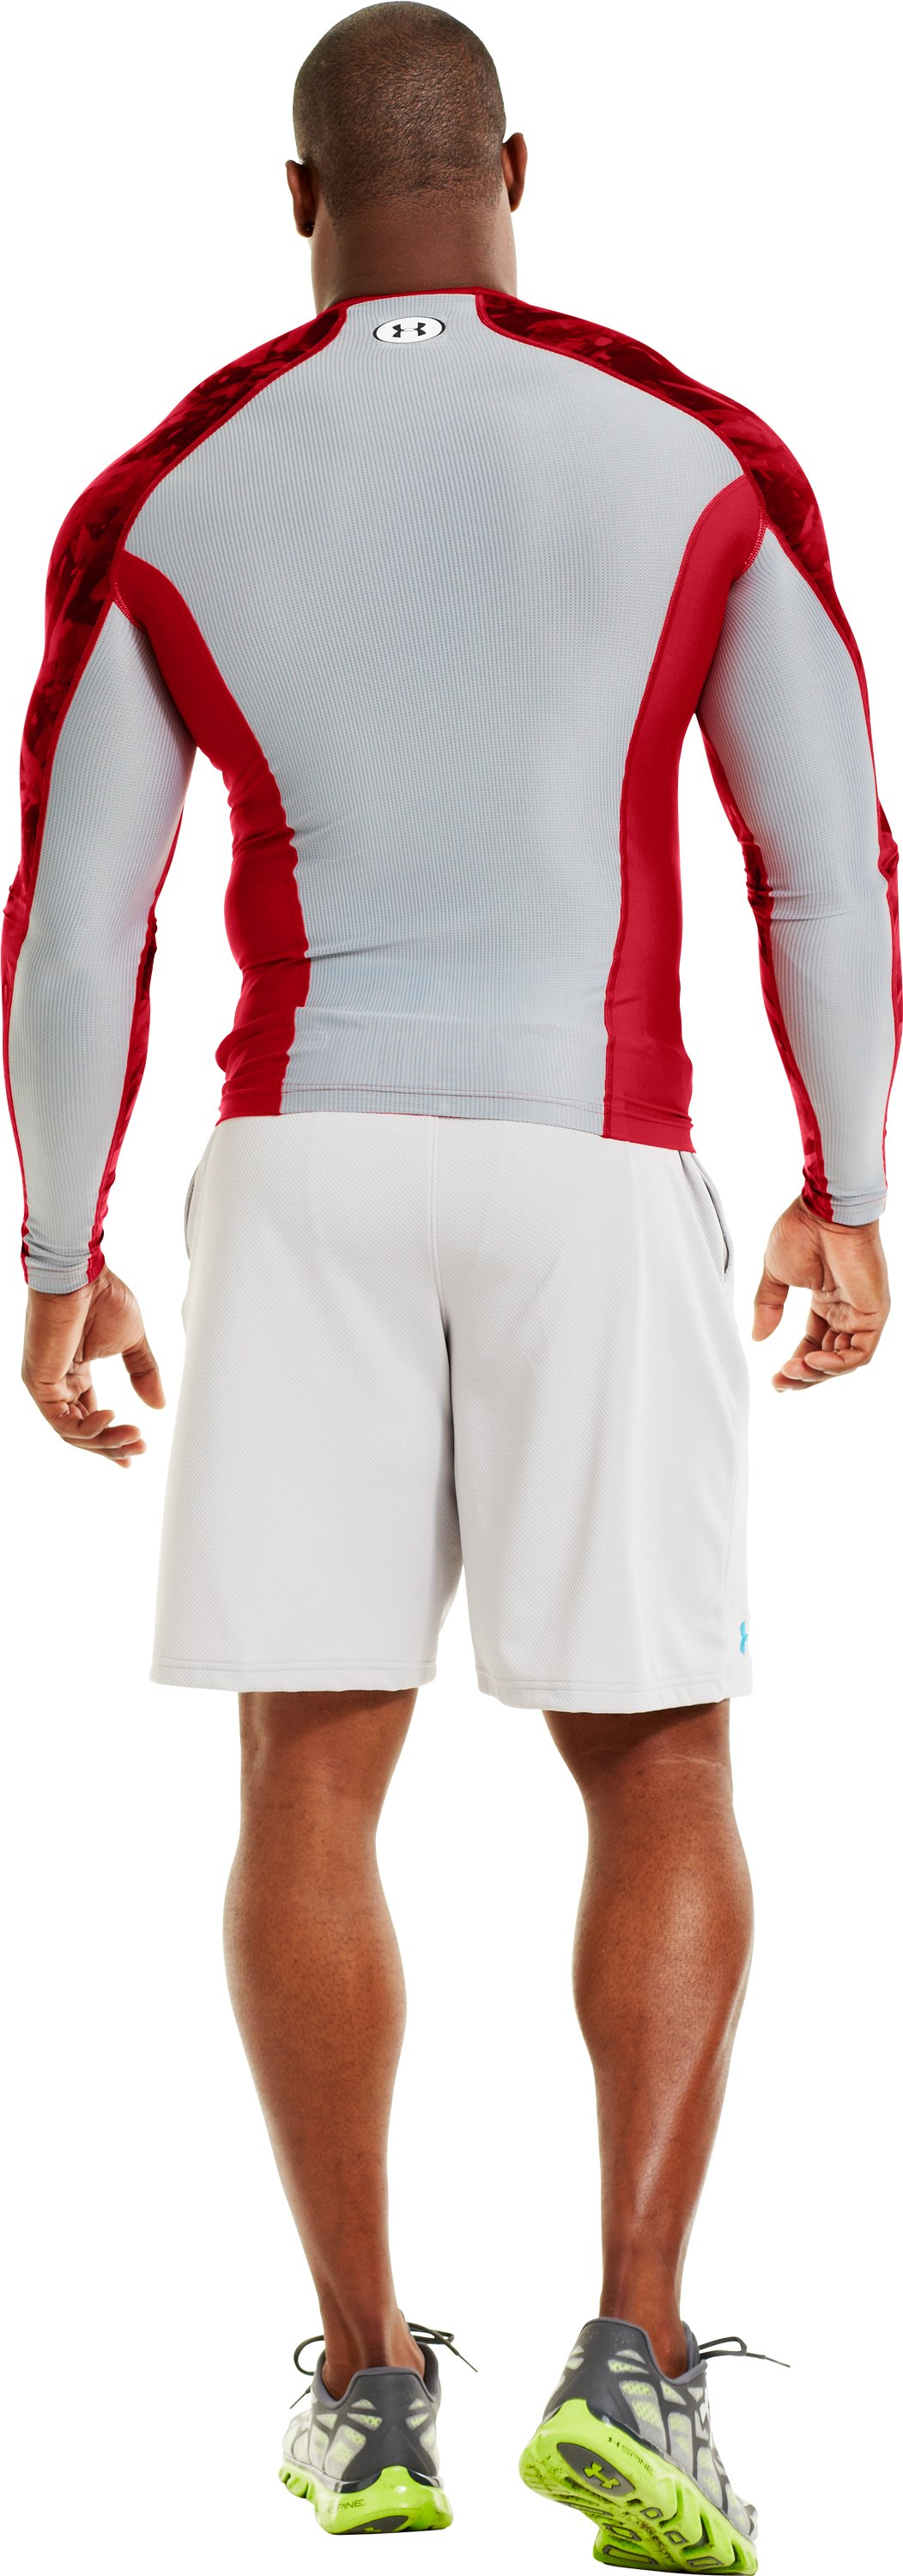 Men's NFL Combine Authentic Compression Long Sleeve, Red, Back